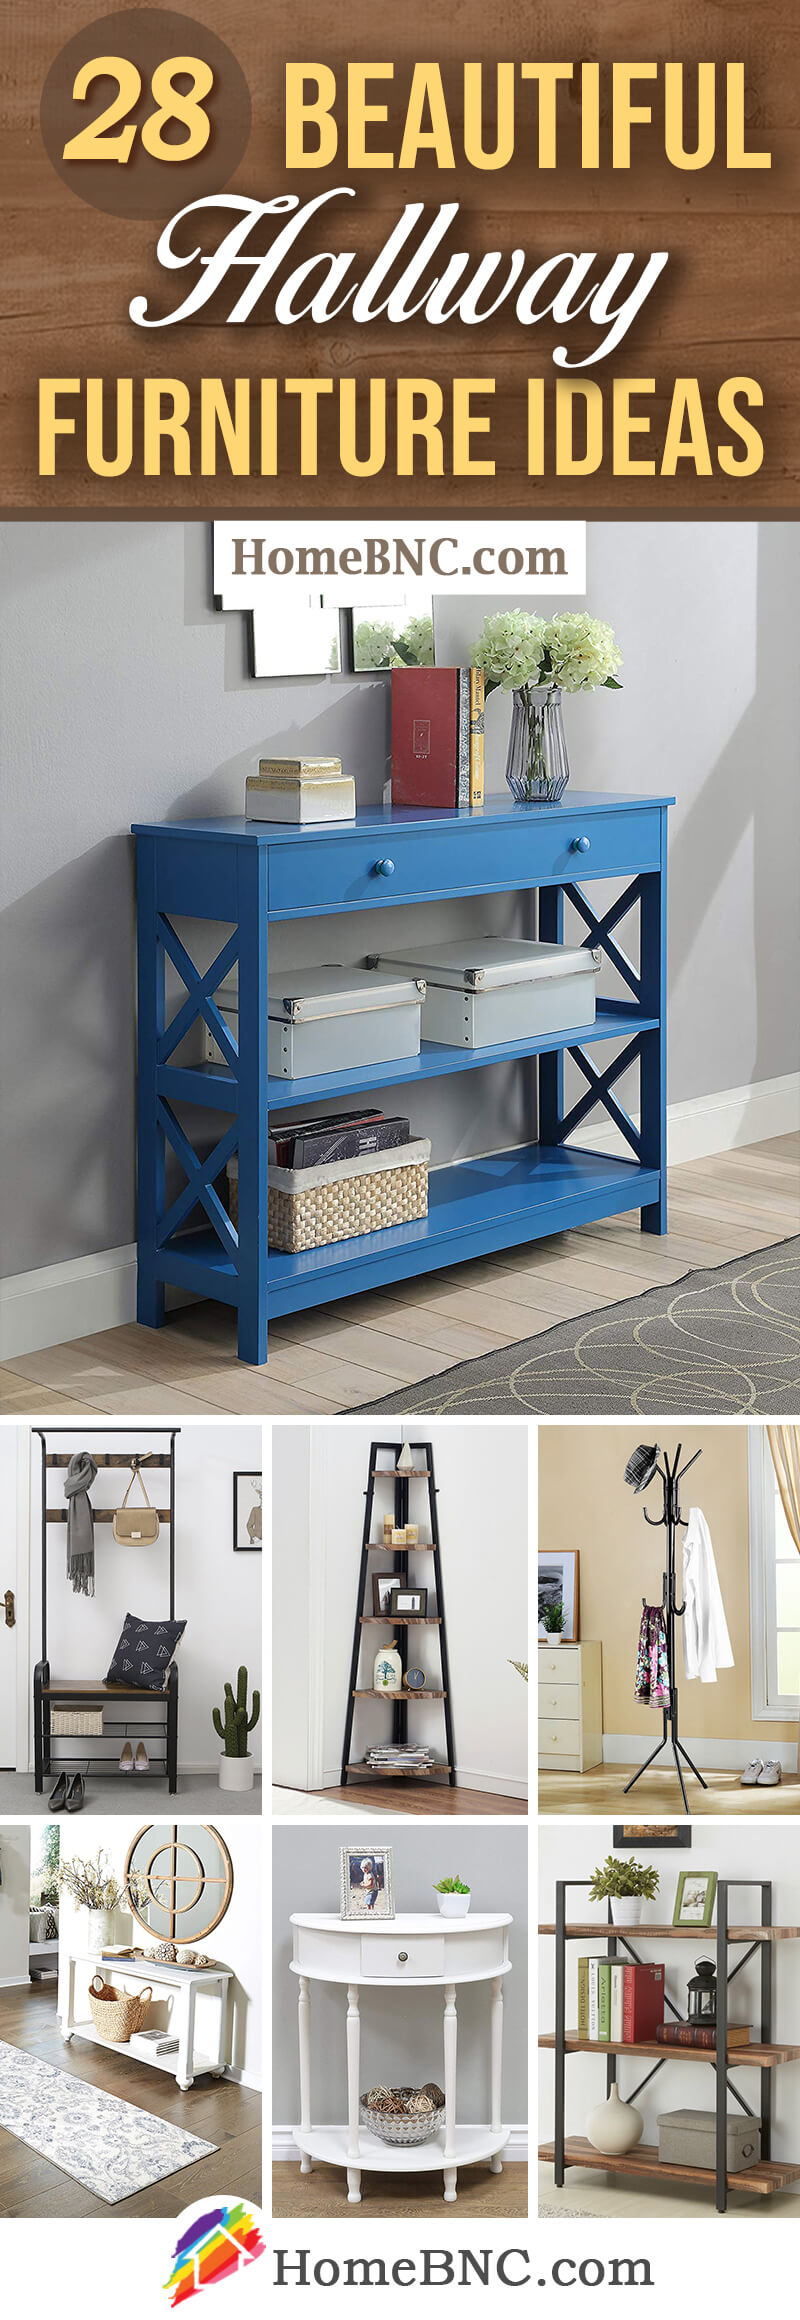 Hallway Furniture Ideas